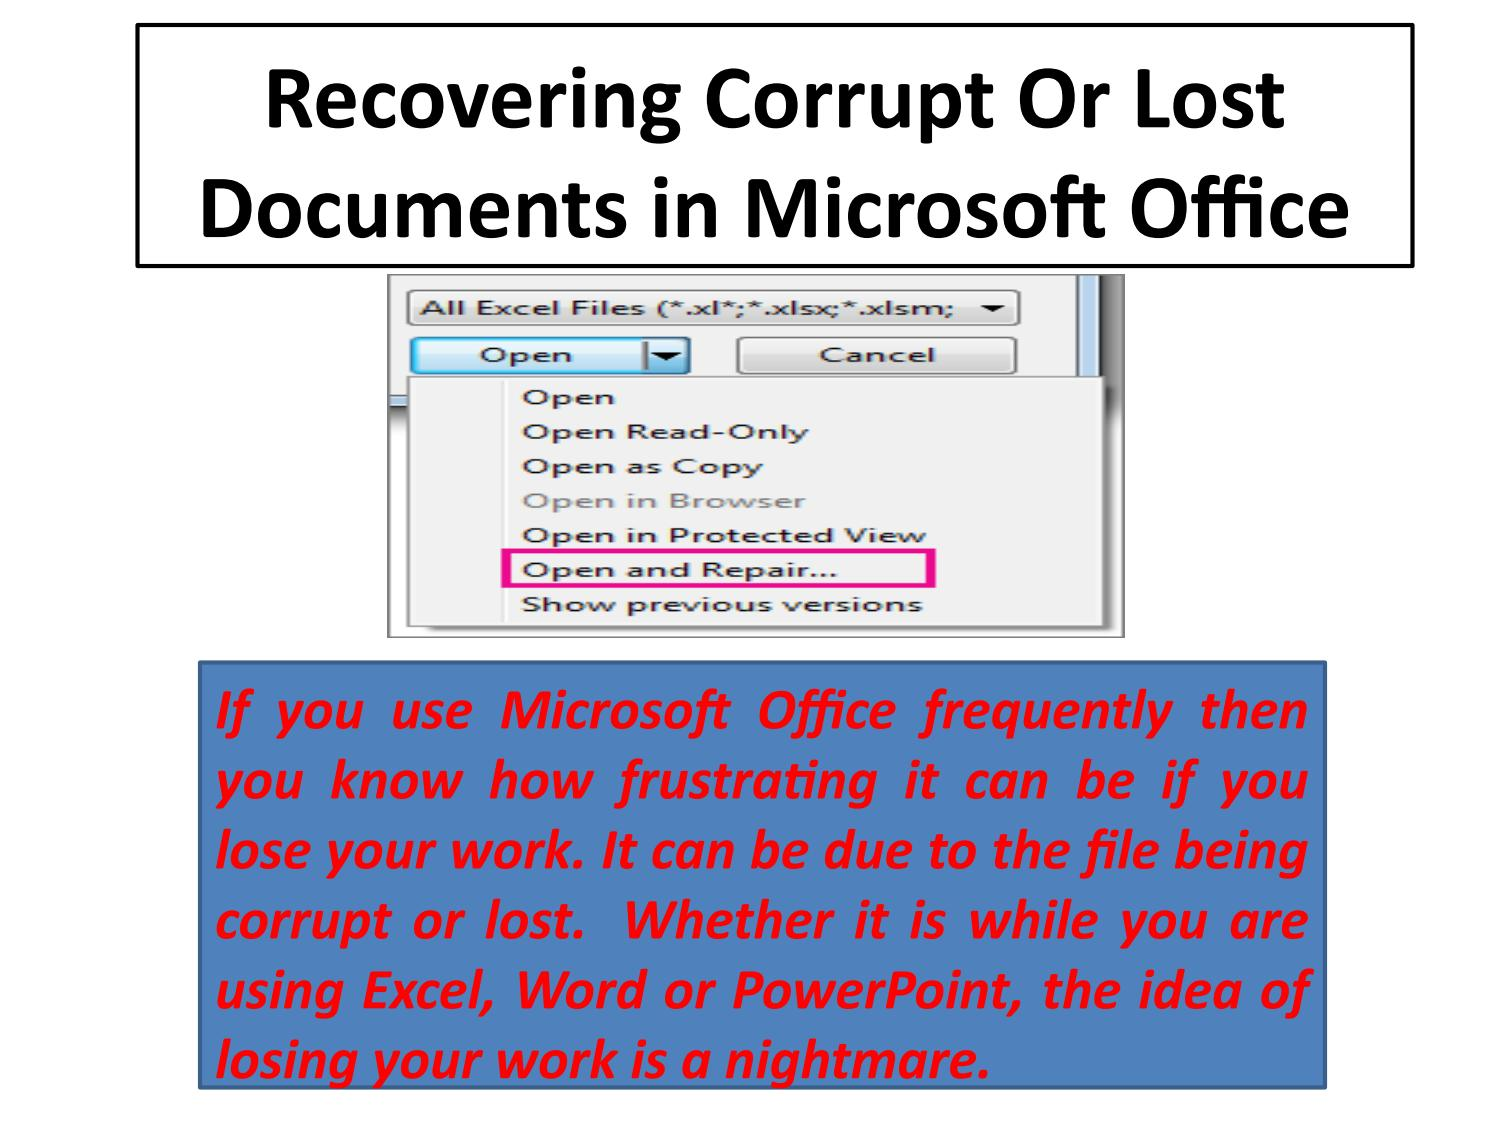 Recovering Corrupt Or Lost Documents in Microsoft Office by